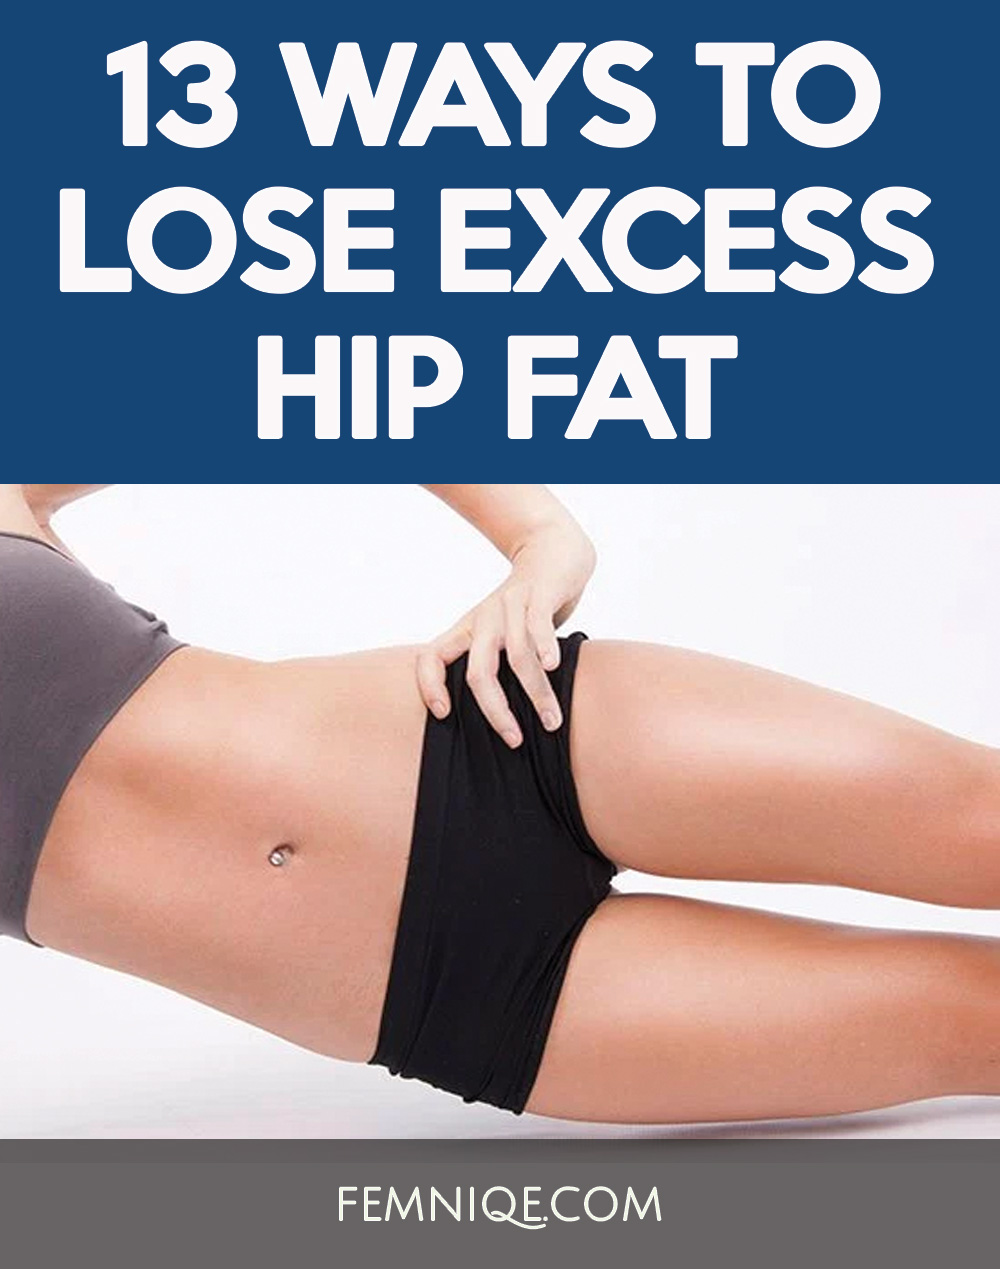 How To Lose Hip Fat (13 Actionable Ways) – Femniqe